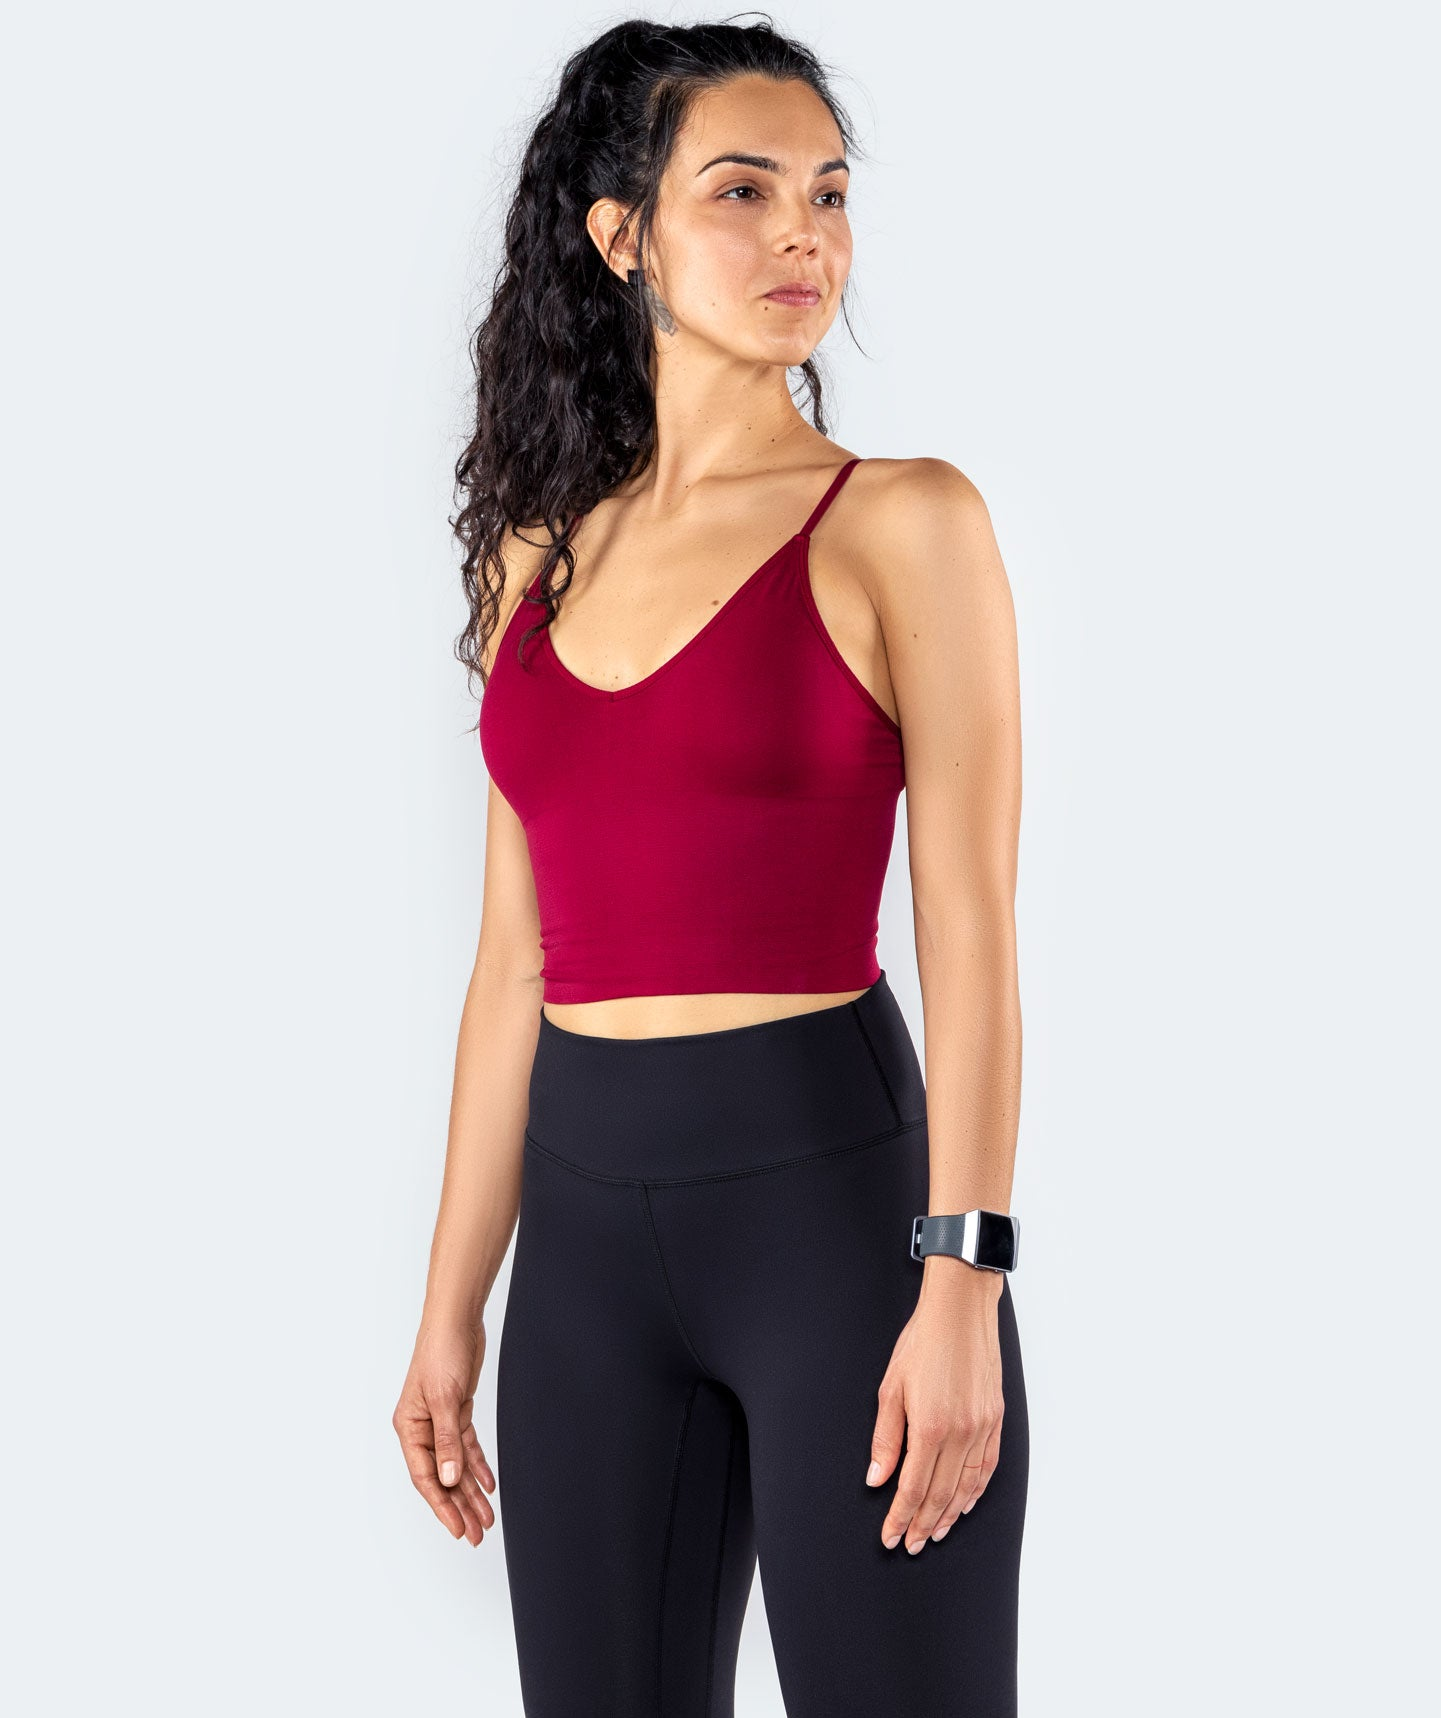 Serene Seamless X Crop Top - Burgundy